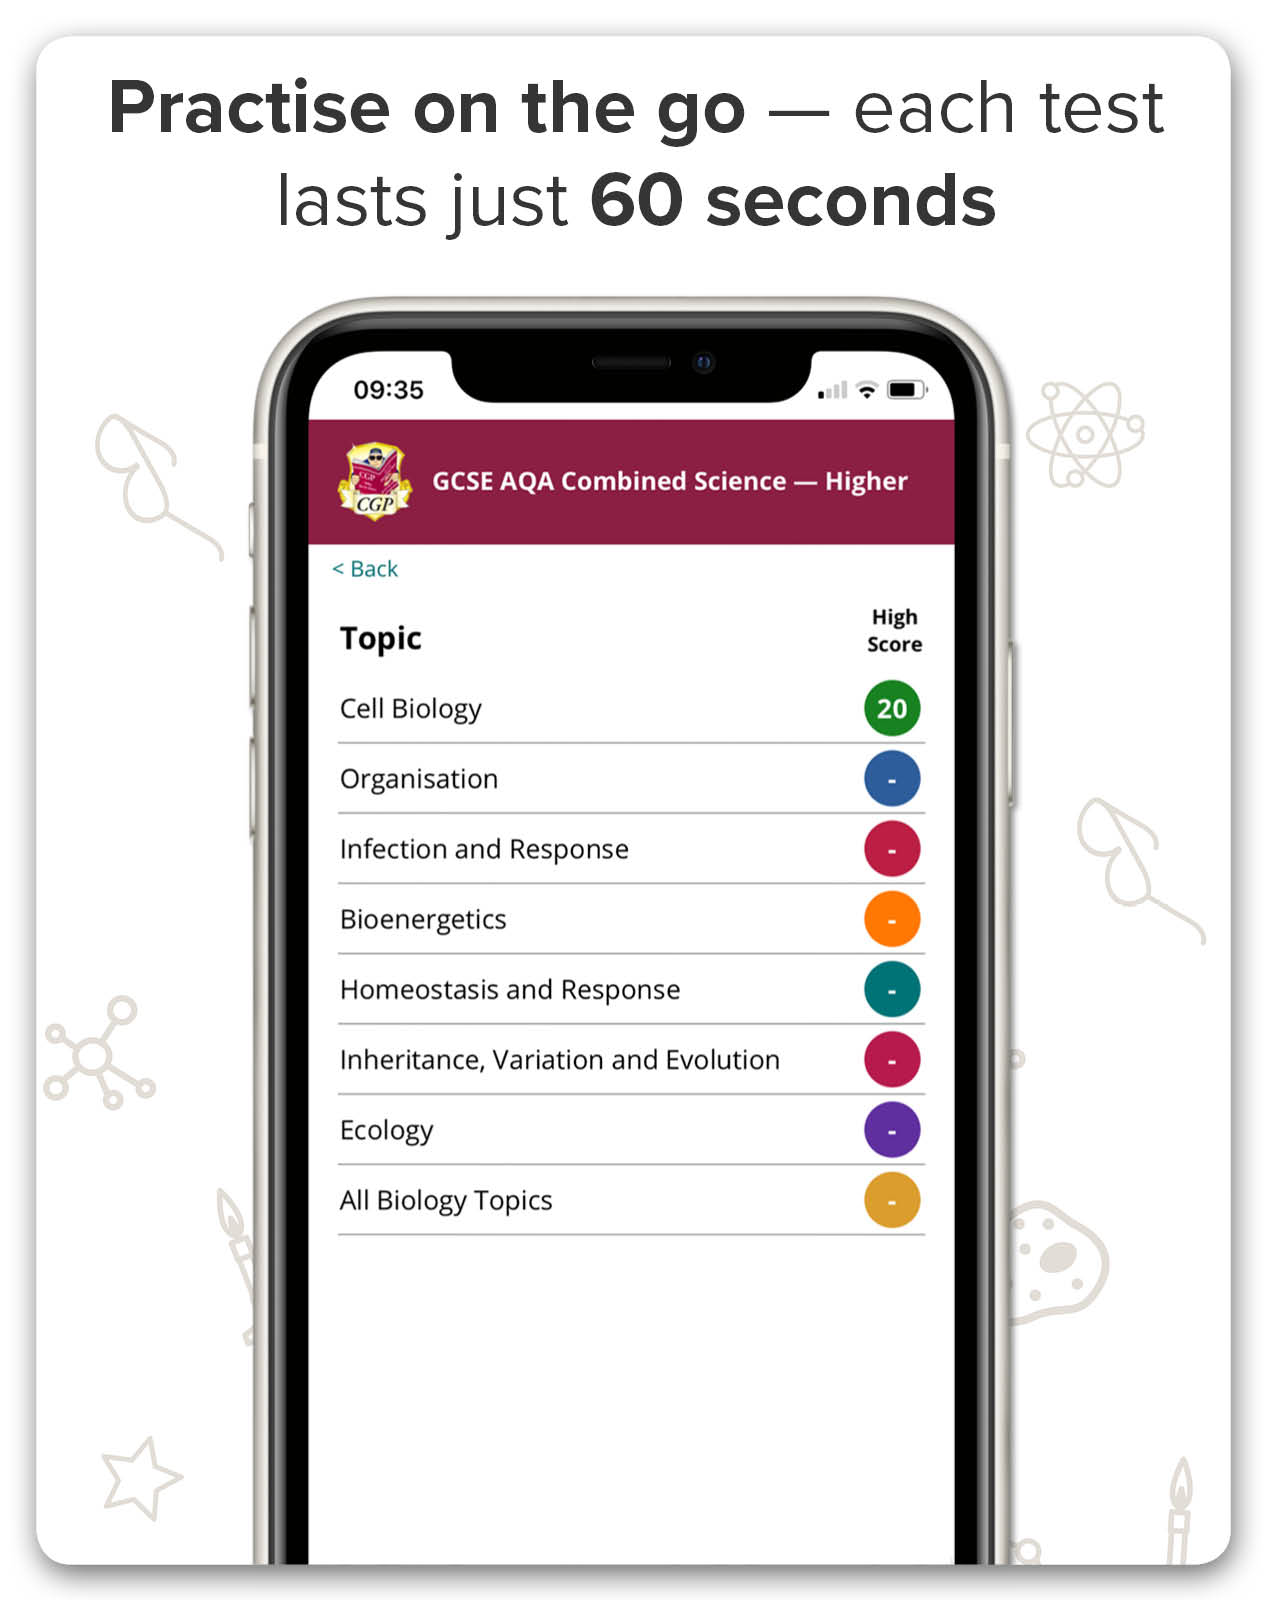 Practise AQA GCSE Science on the go!